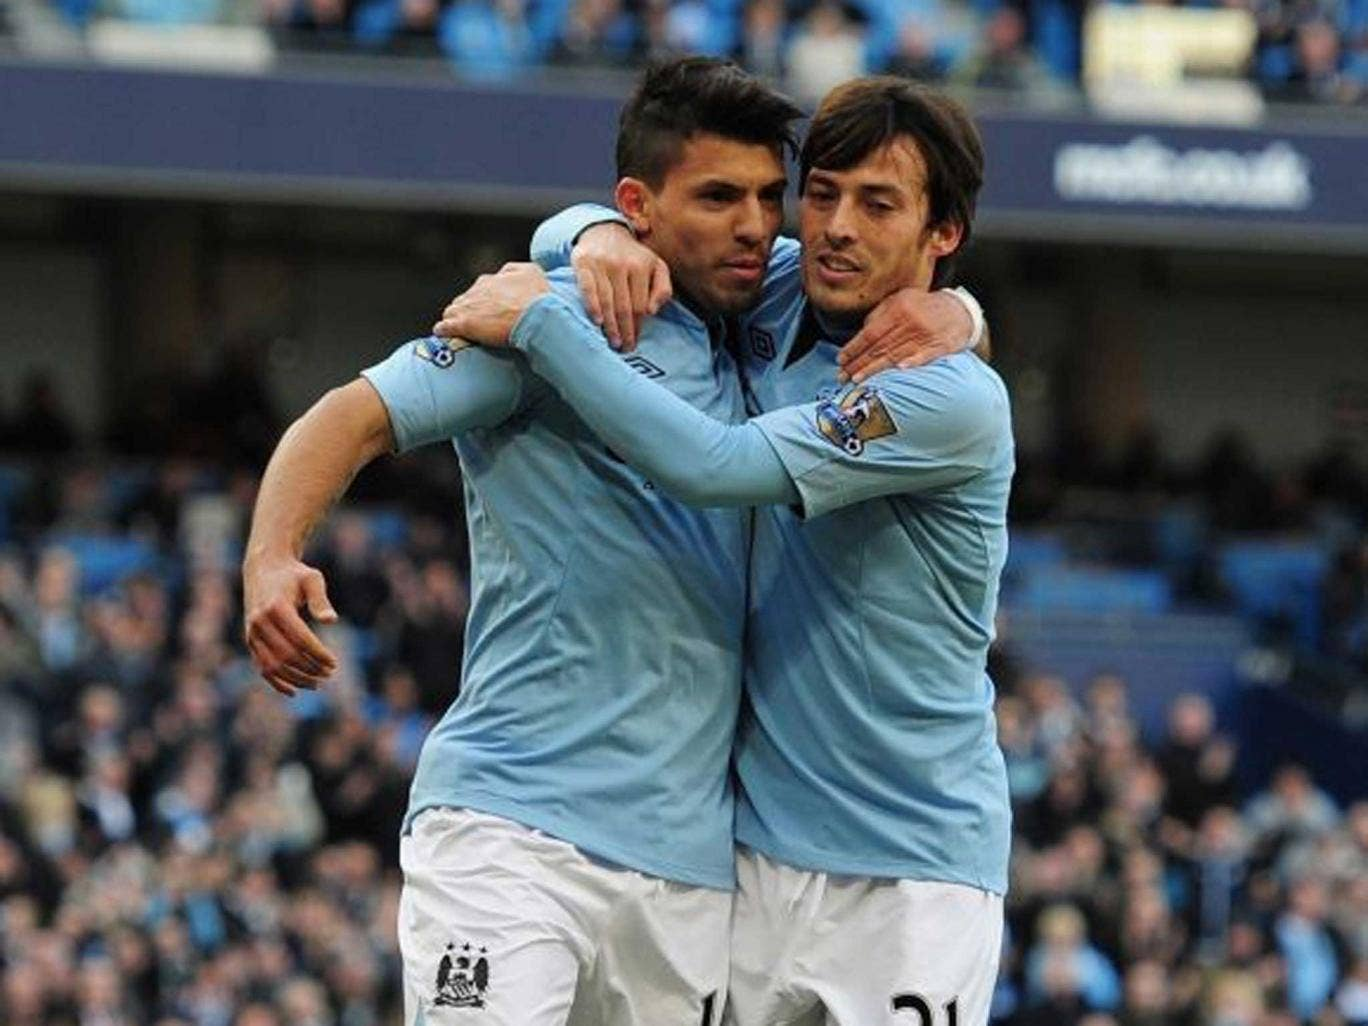 Tight bond: Aguero (left) and Silva have formed a sound understanding